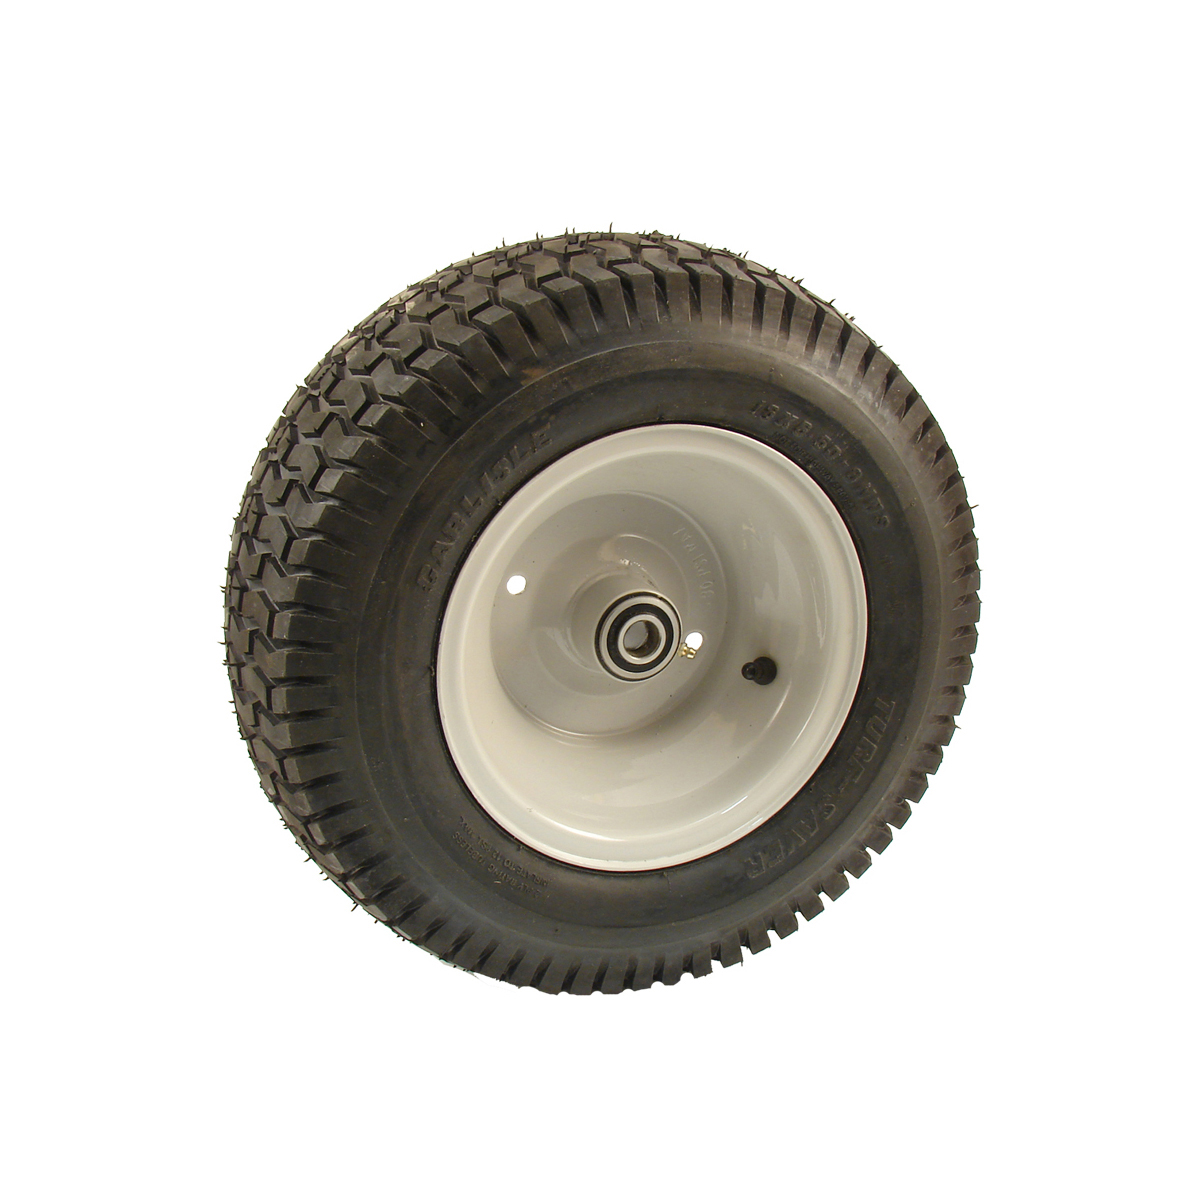 Wheel Assembly W/Tire OYSTR W/CARL 634-0085